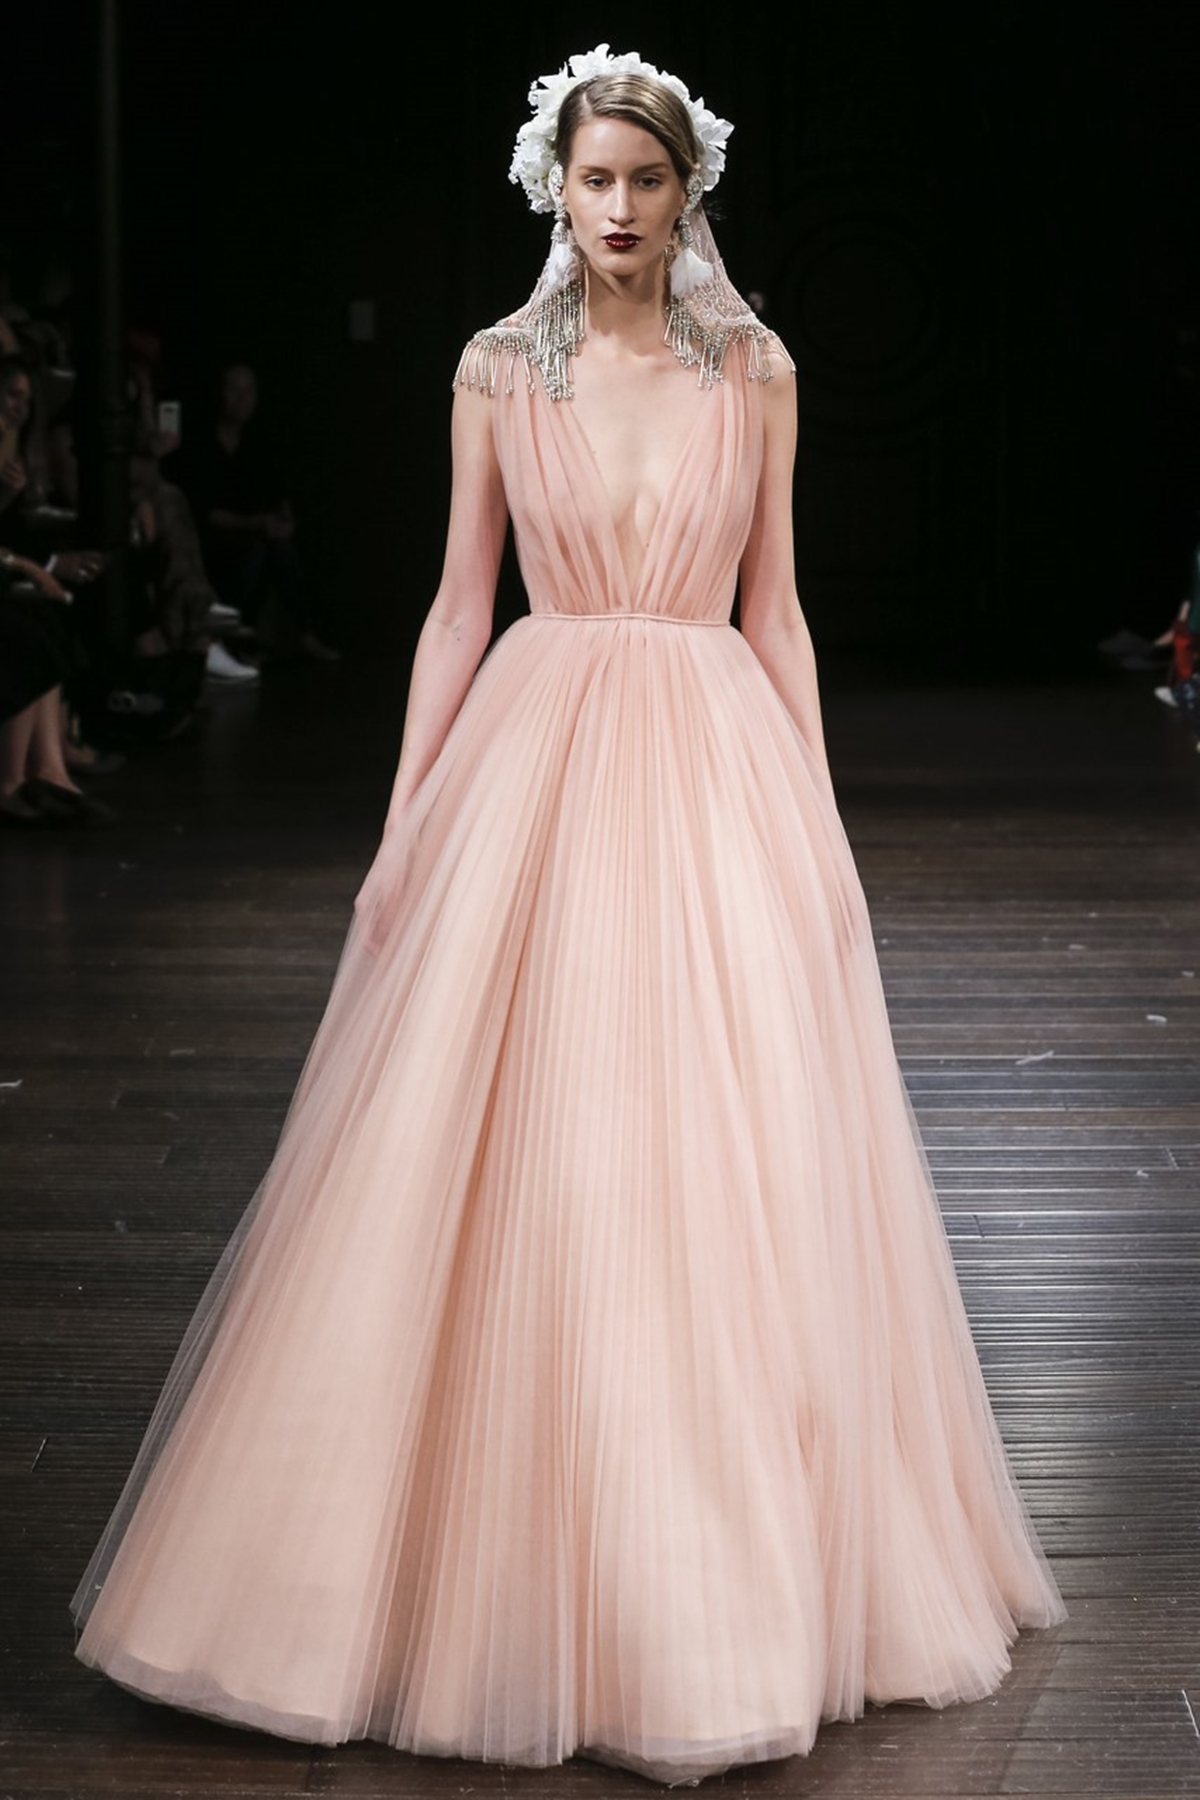 Our favorite blush pink wedding dresses | The Wedding Tales